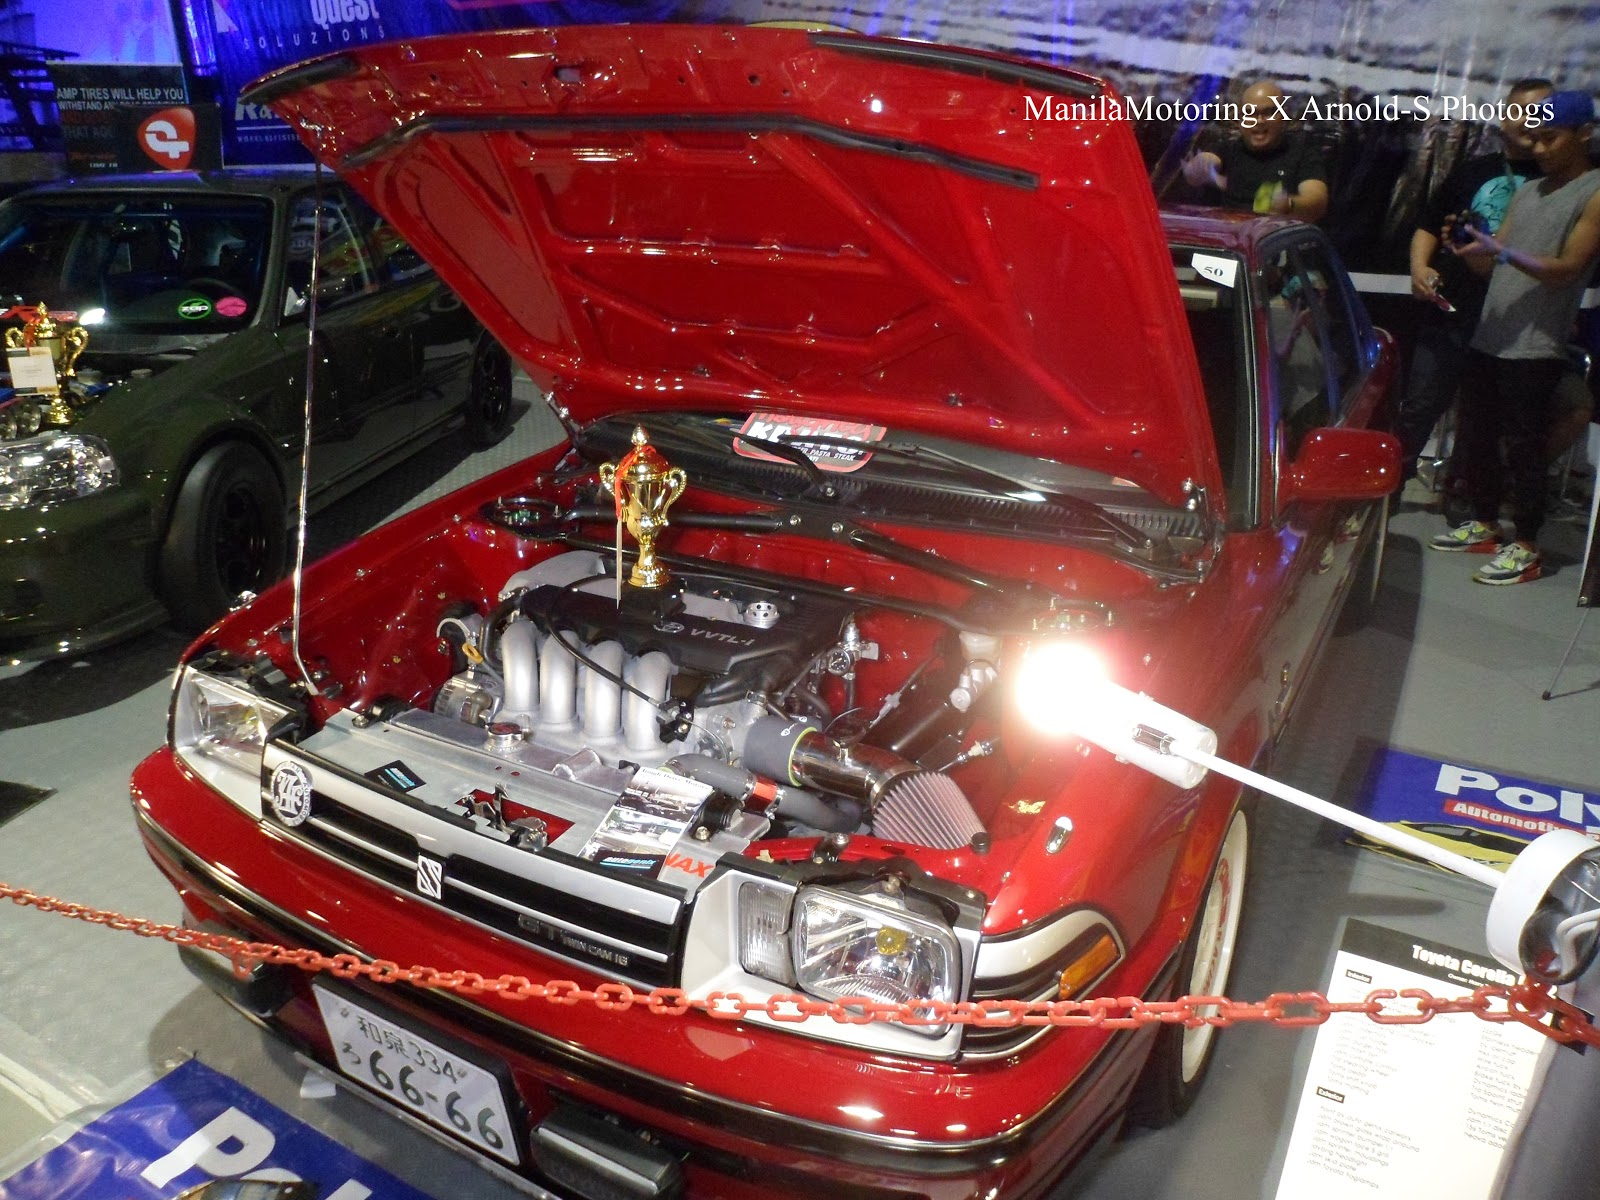 Manila Motoring: Your source for automotive information in the